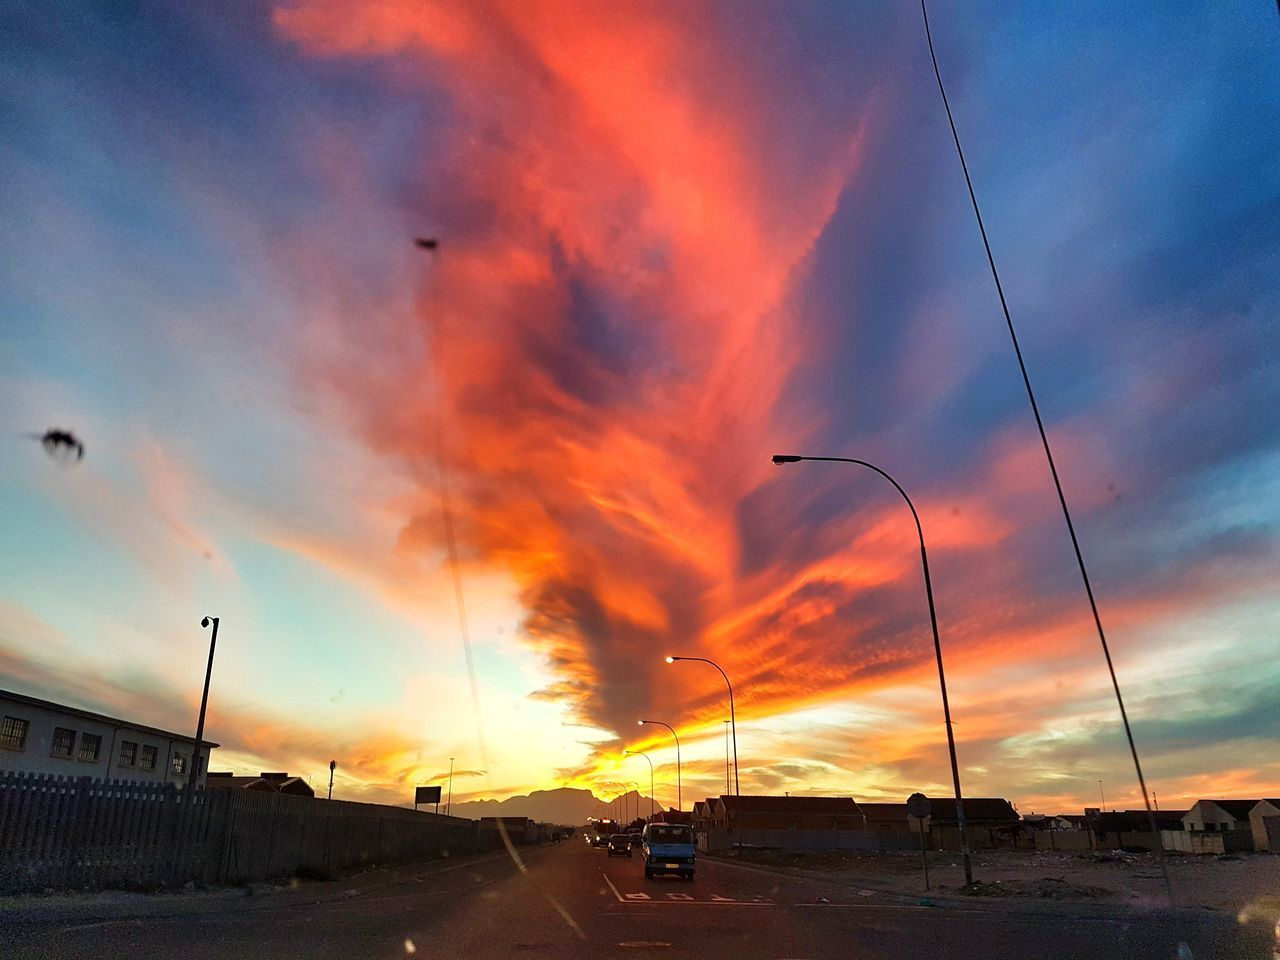 sunset, cloud - sky, sky, orange color, dramatic sky, car, land vehicle, transportation, mode of transport, road, nature, built structure, outdoors, architecture, building exterior, beauty in nature, no people, city, day